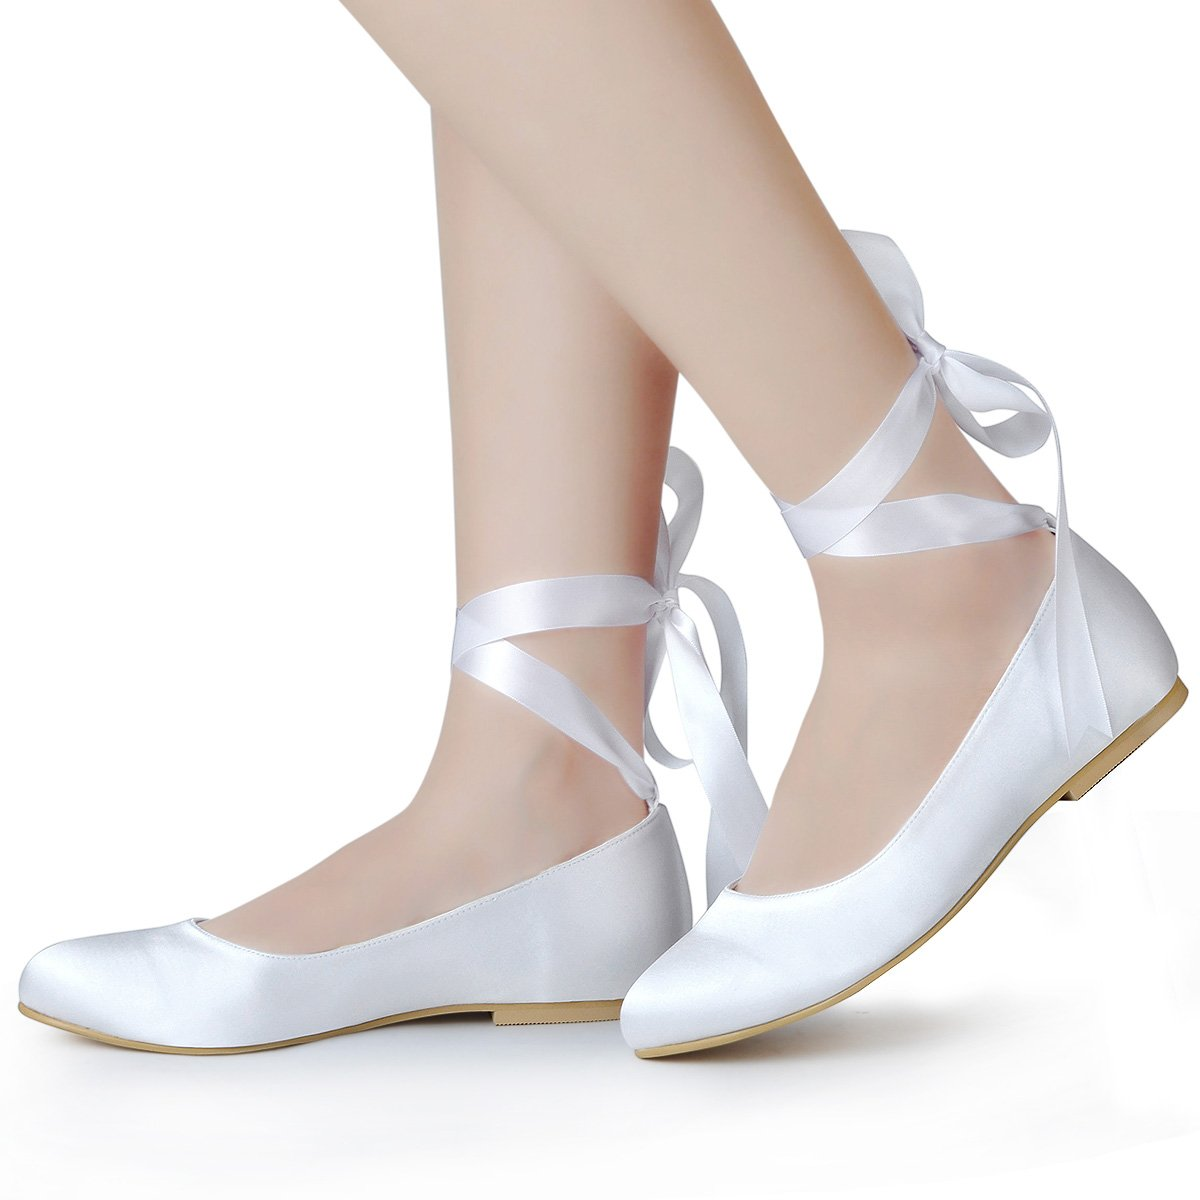 1920s Wedding Shoes | Art Deco Wedding Shoes ElegantPark Women Comfort Flats Closed Toe Ribbon Tie Satin Wedding Bridal Shoes $42.95 AT vintagedancer.com